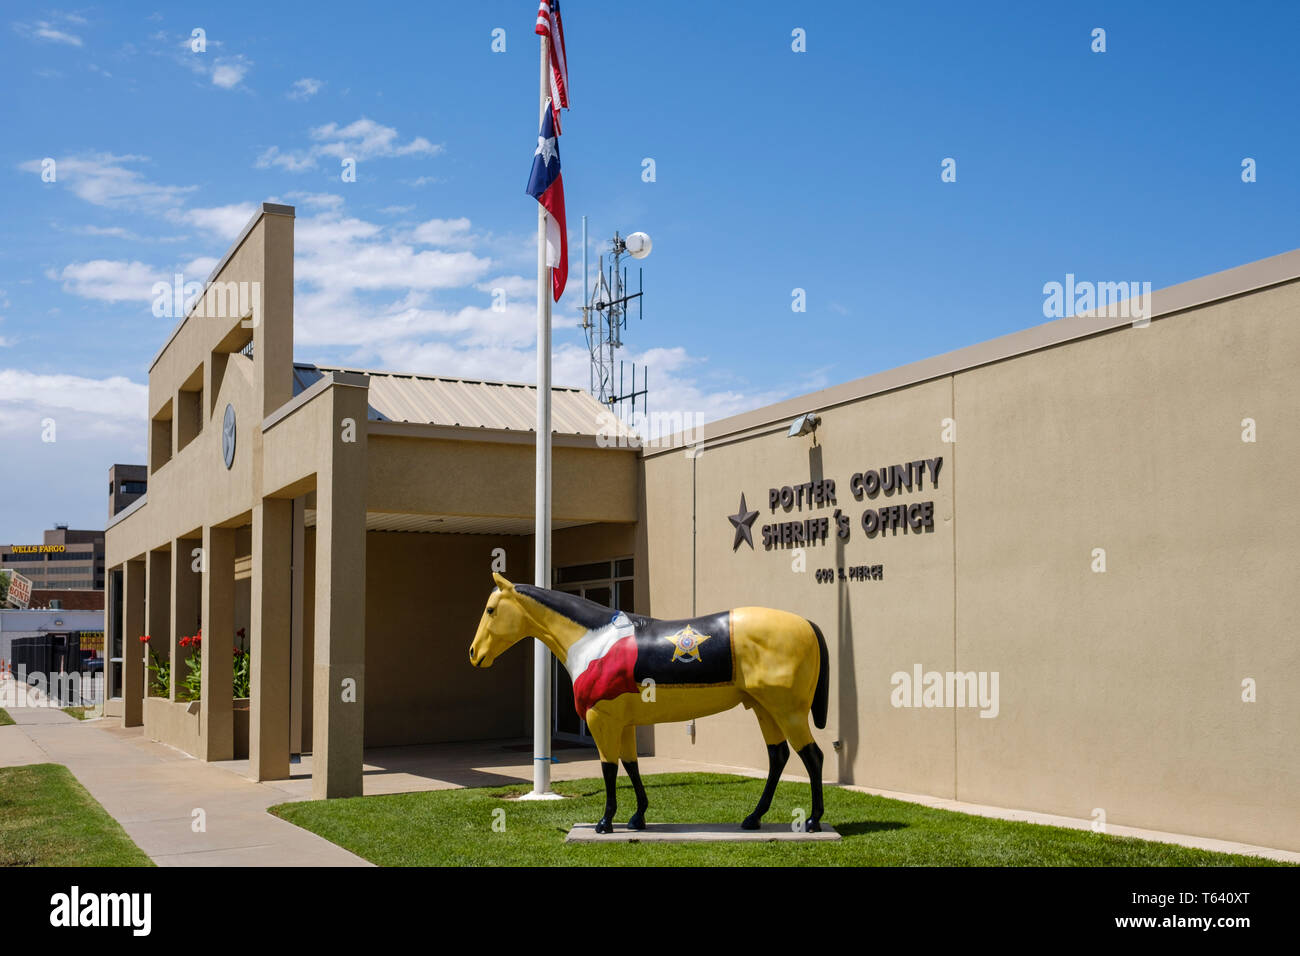 County Sheriff Texas Stock Photos & County Sheriff Texas Stock